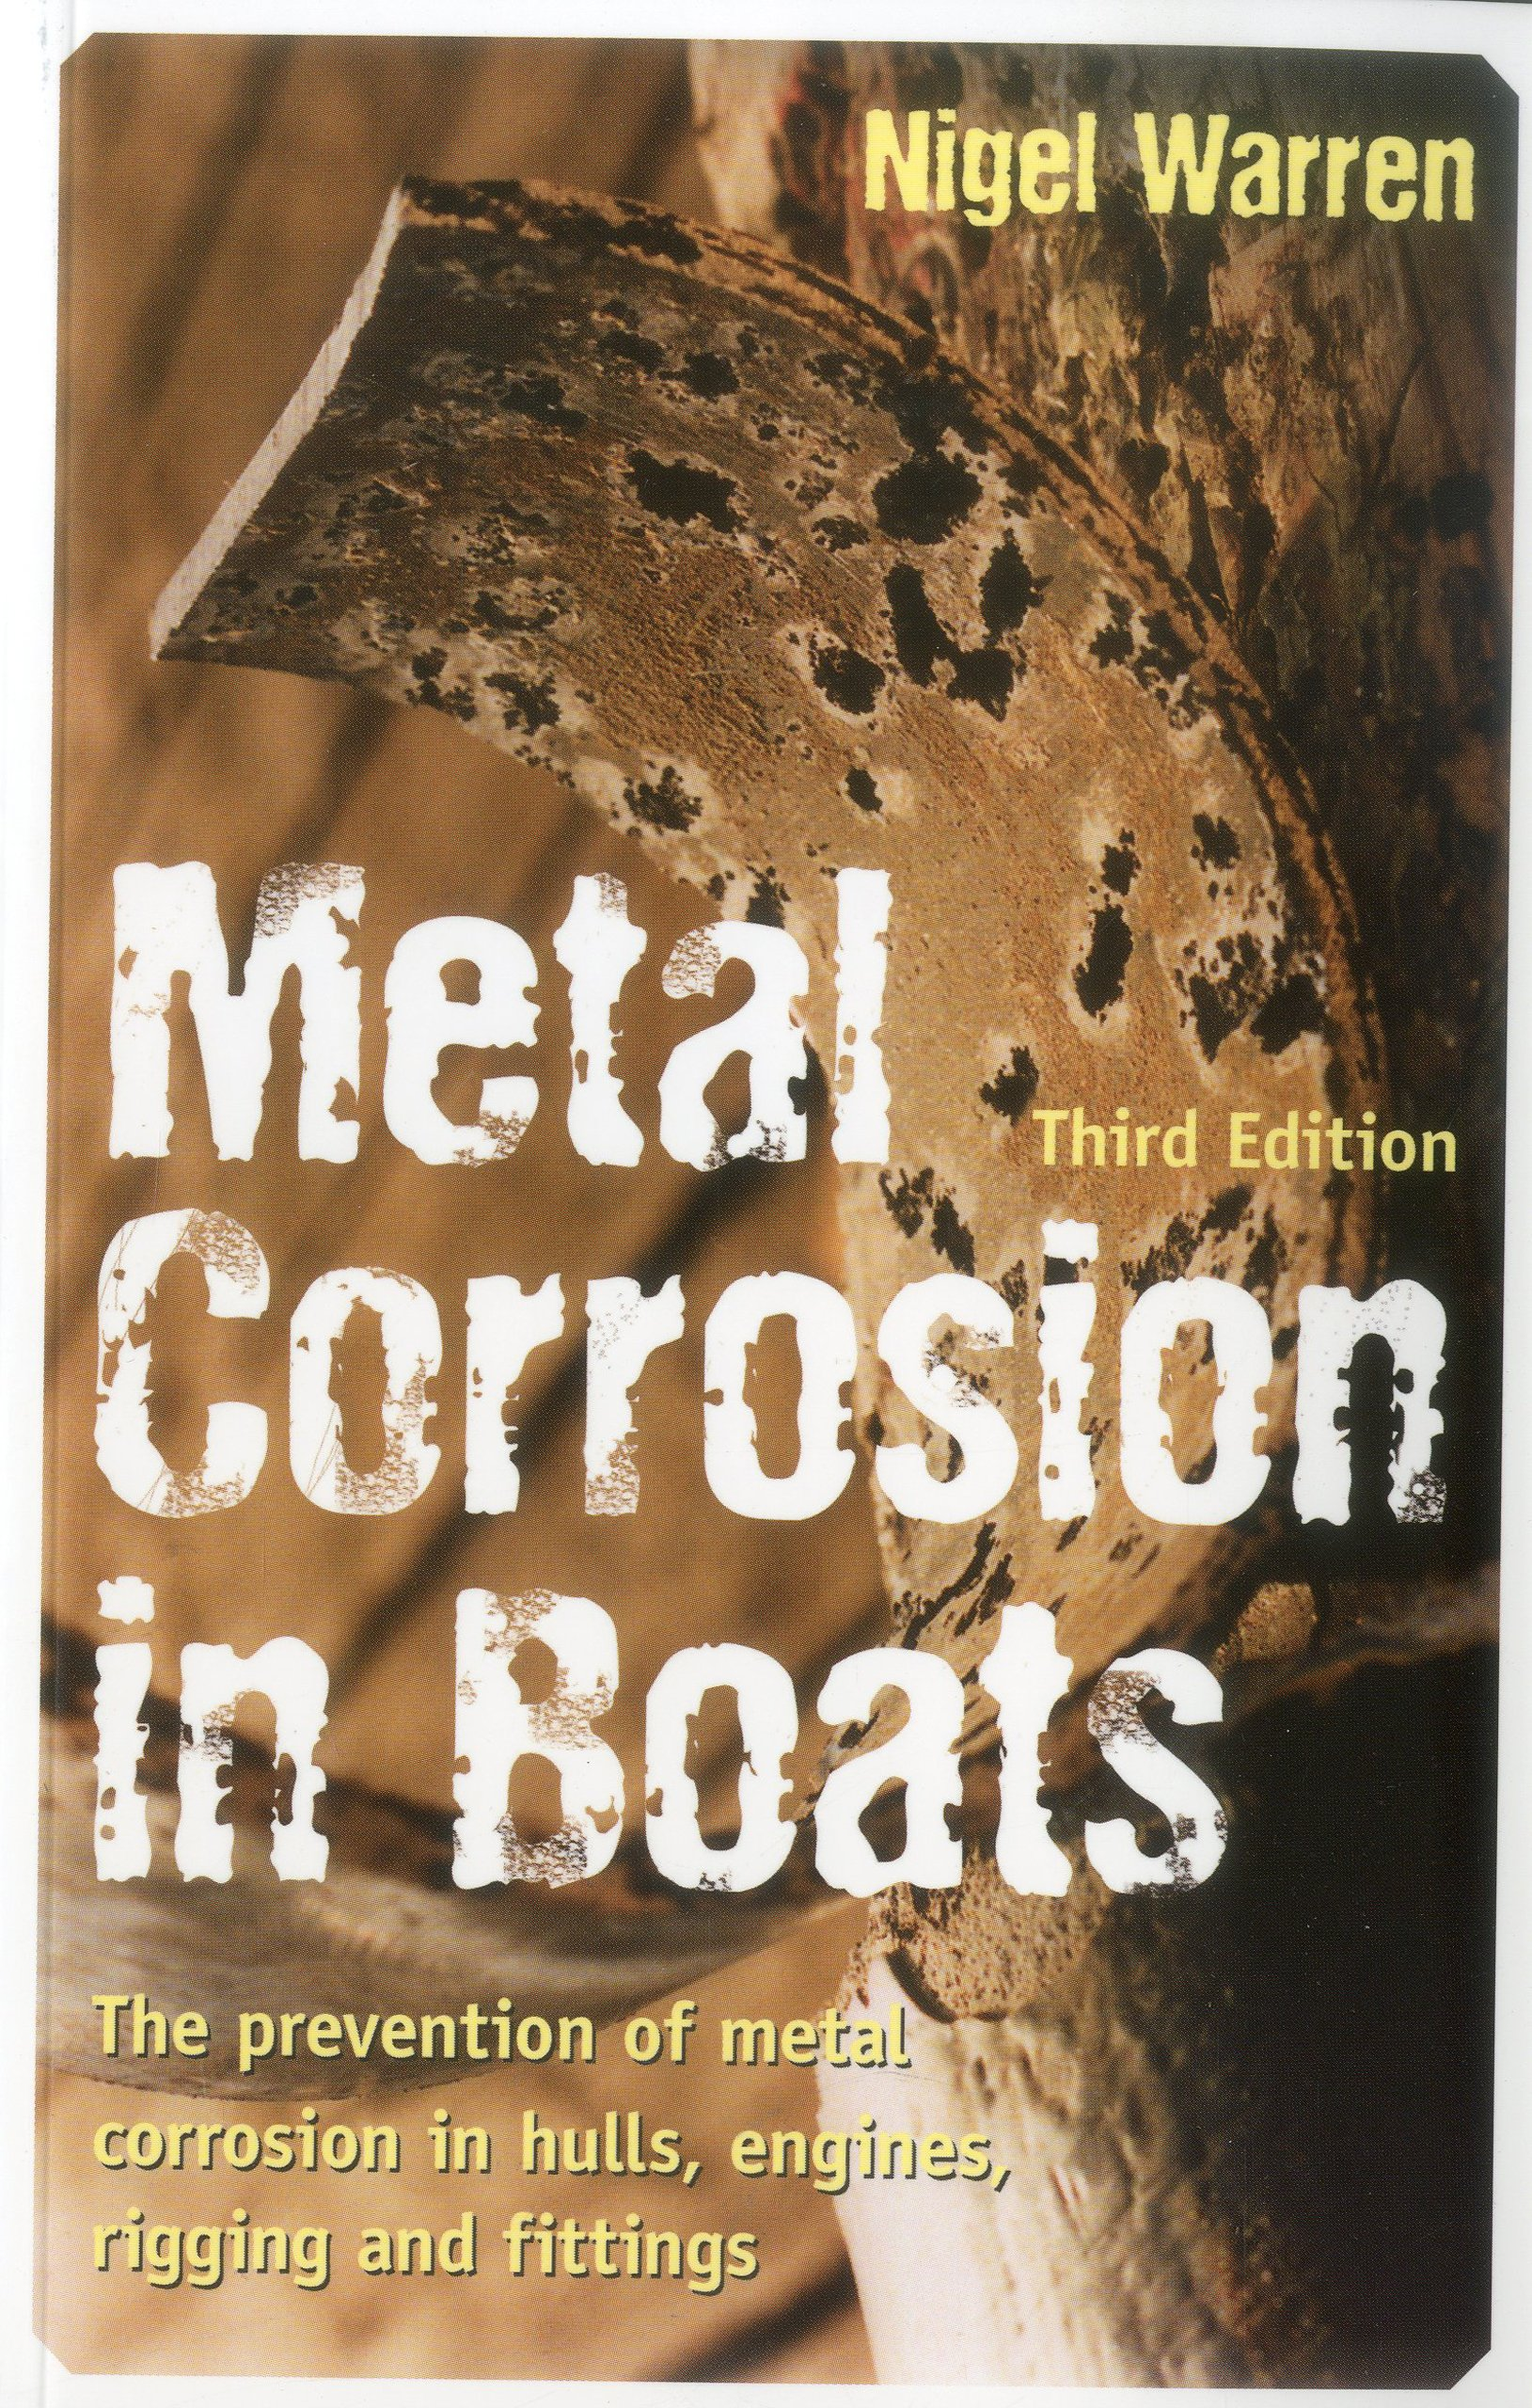 Metal Corrosion in Boats: The Prevention of Metal Corrosion in Hulls, Engines, Rigging and Fittings